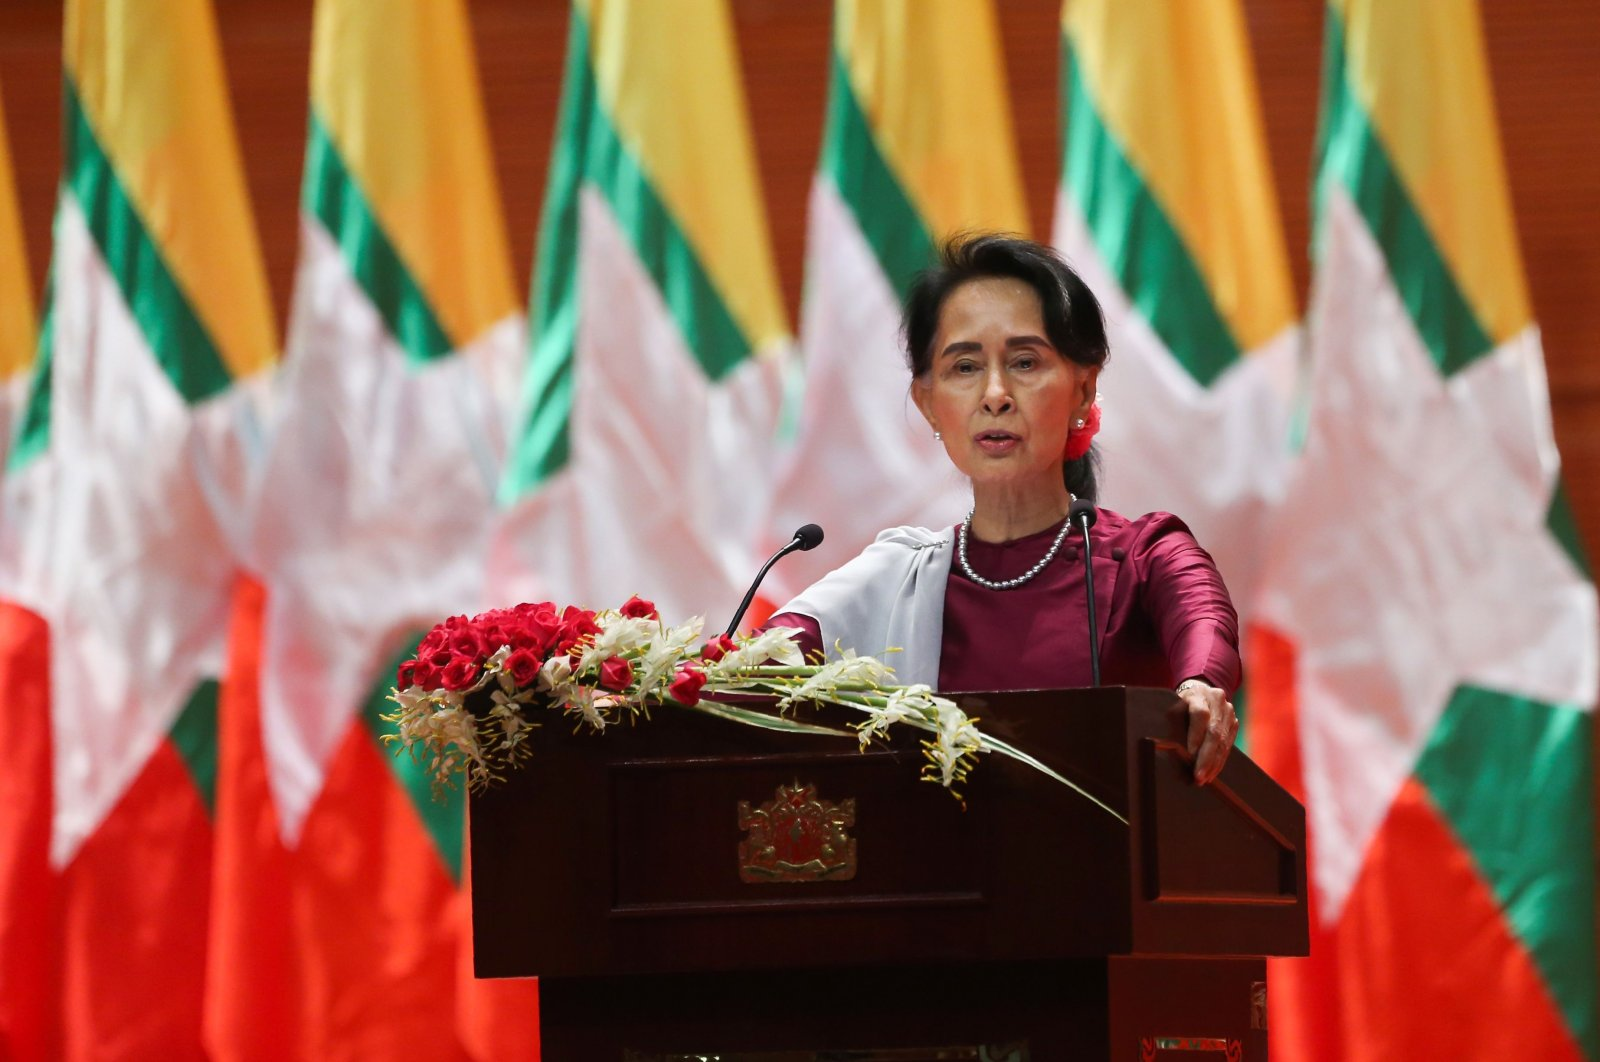 Myanmar's leader Aung San Suu Kyi delivers a national address in Naypyidaw, Myanmar, Sept. 19, 2017. (AFP Photo)